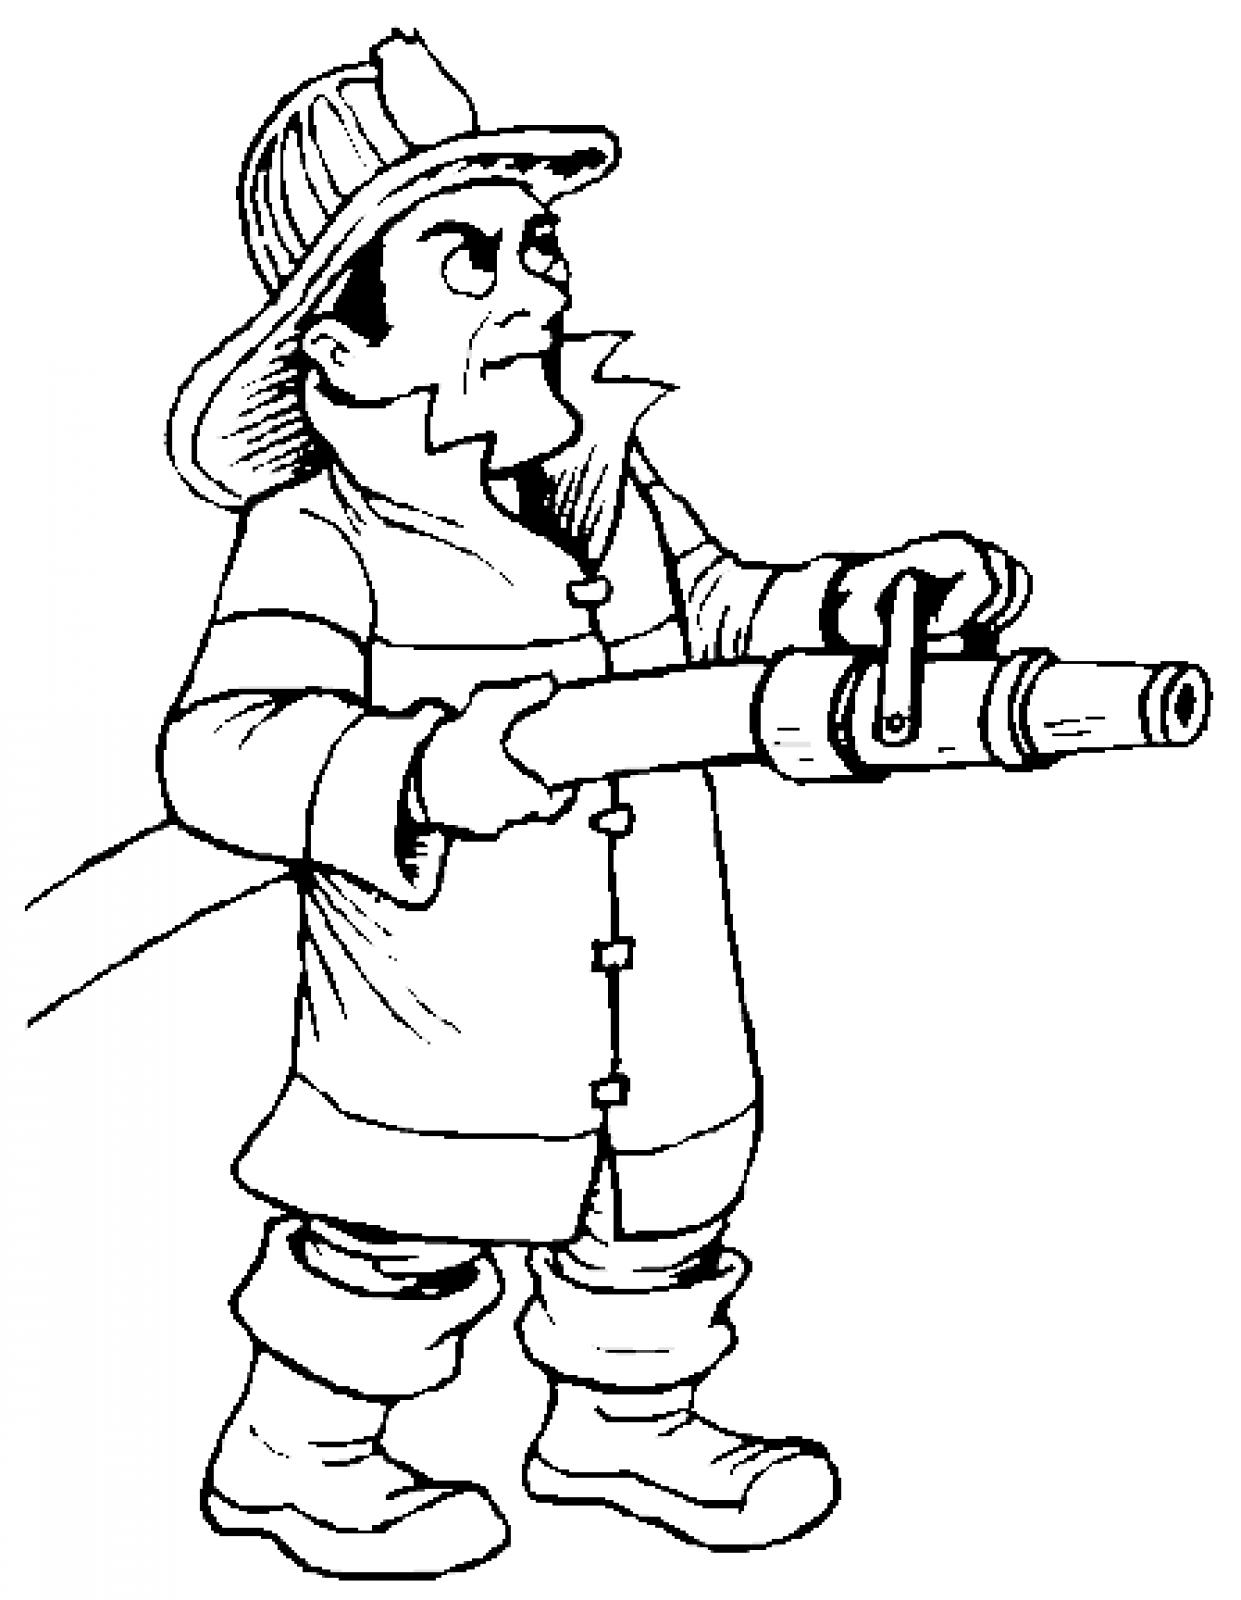 Fire Fighter Clipart Black And White. Firefighter cartoon fire .